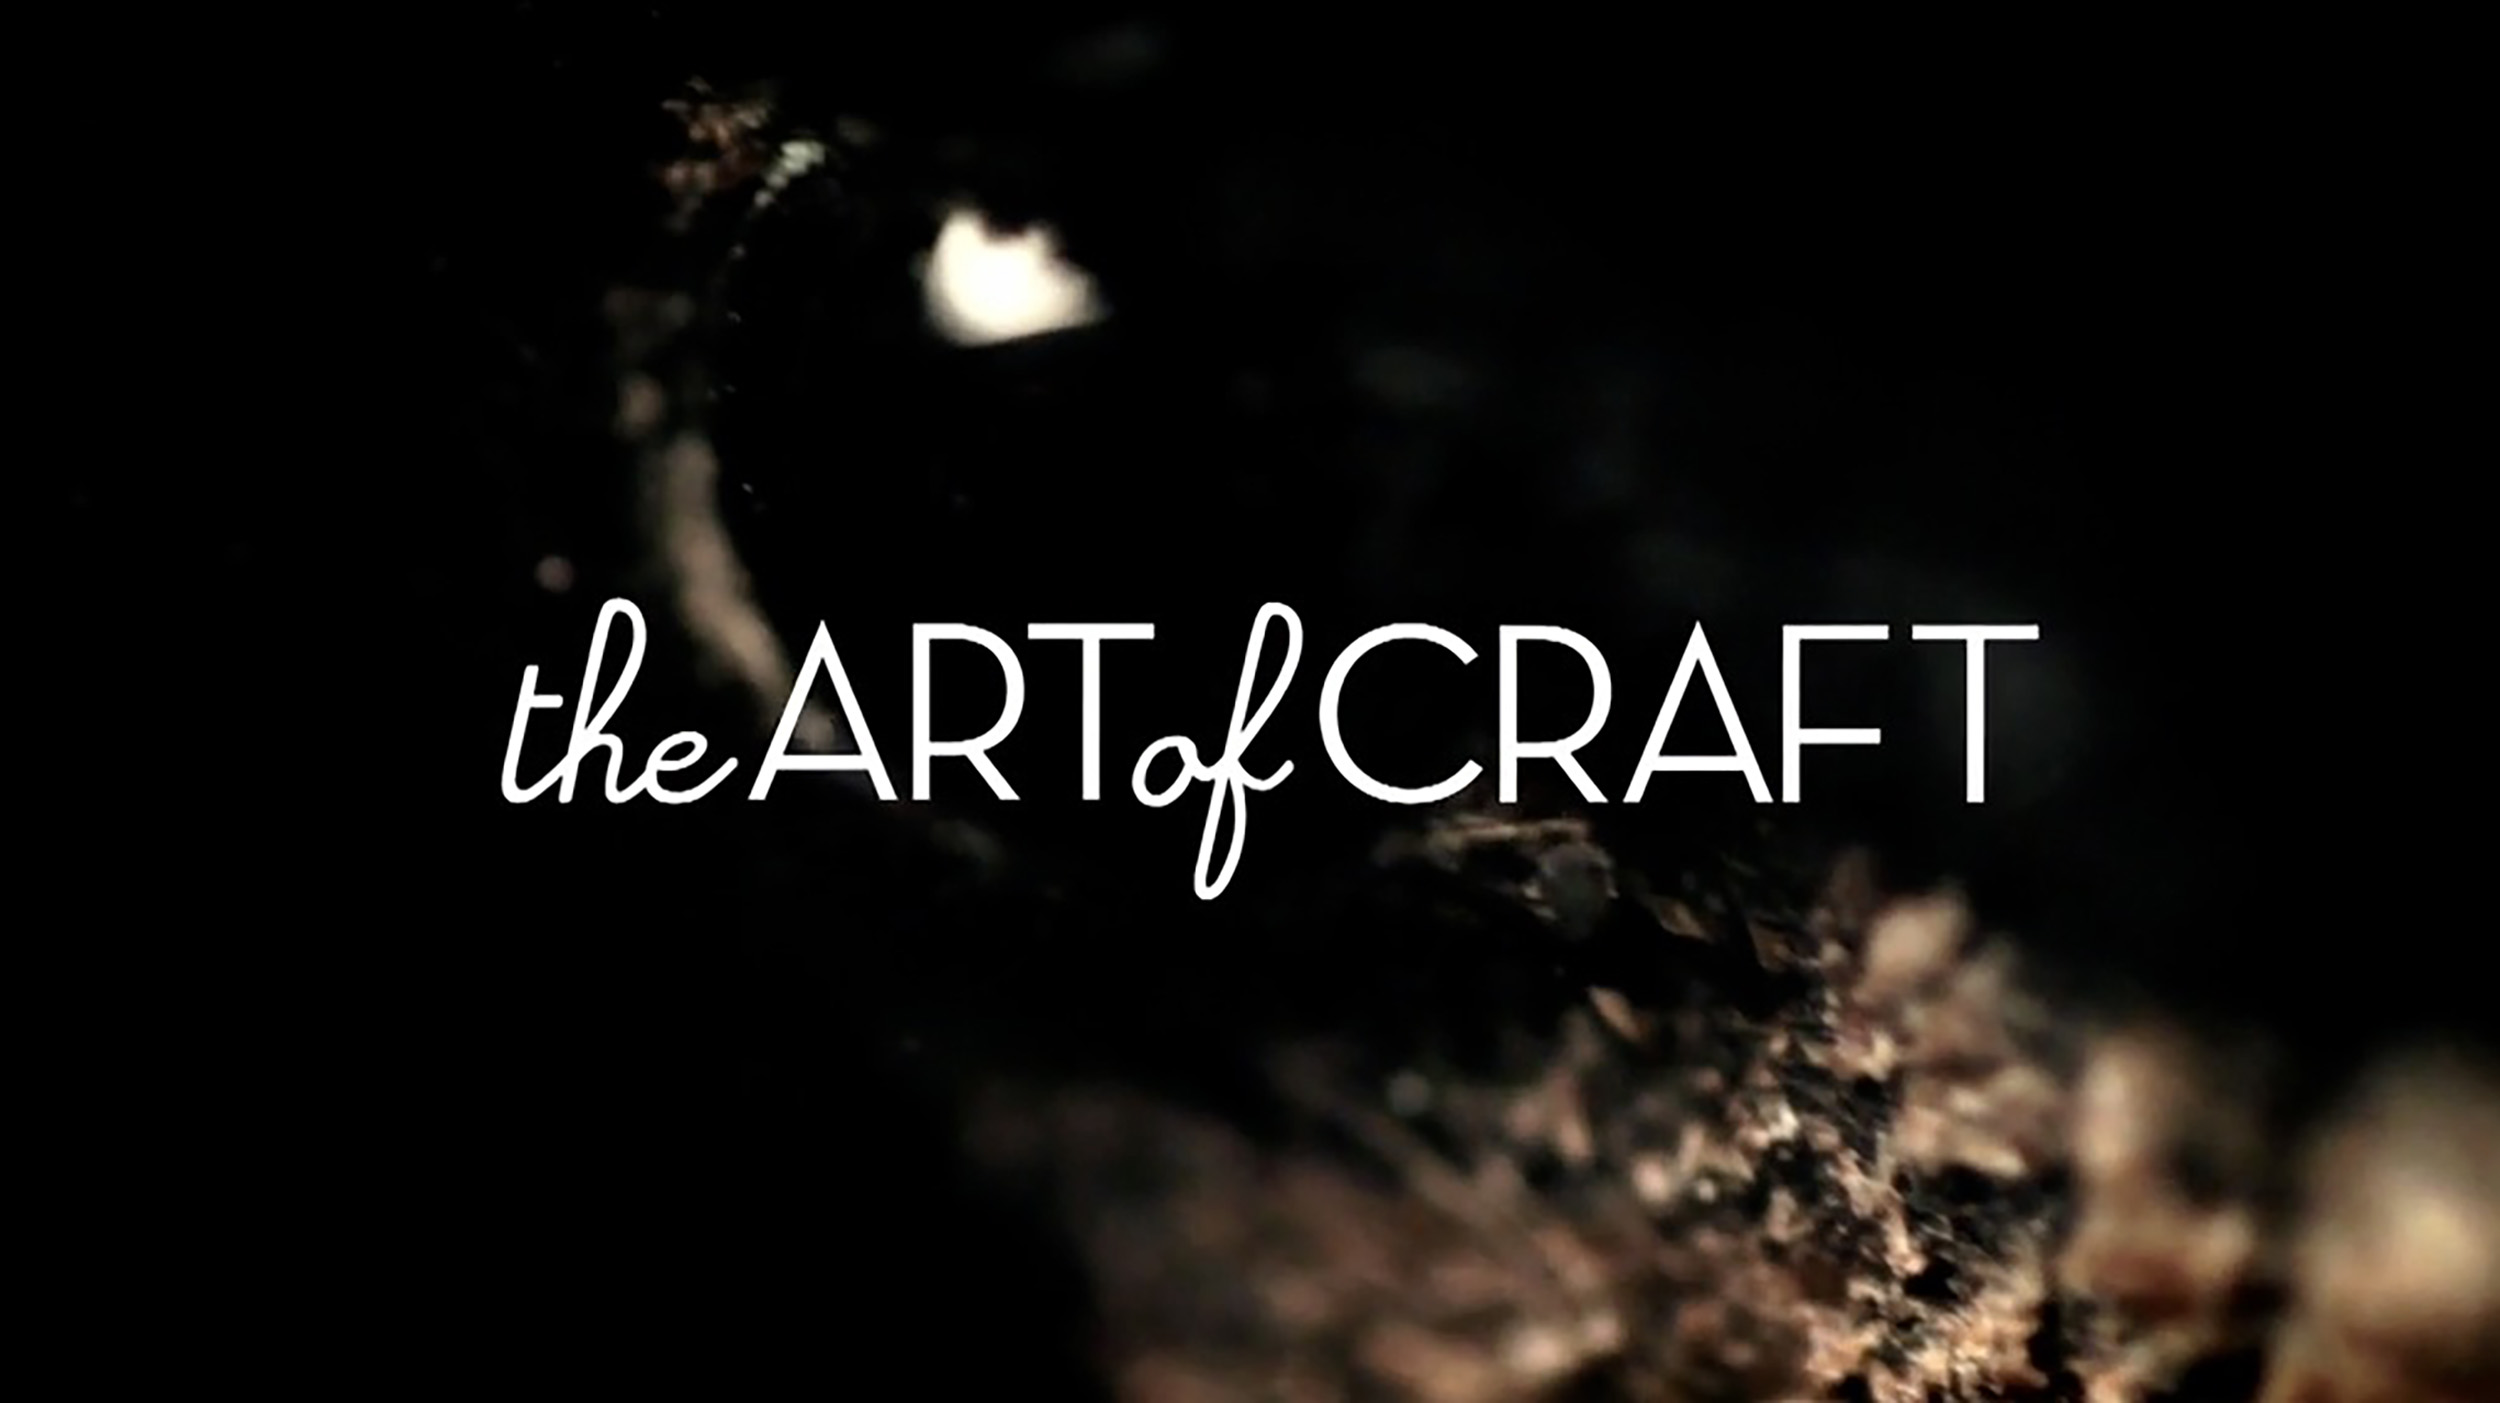 'The Art of Craft' Caroline Groves